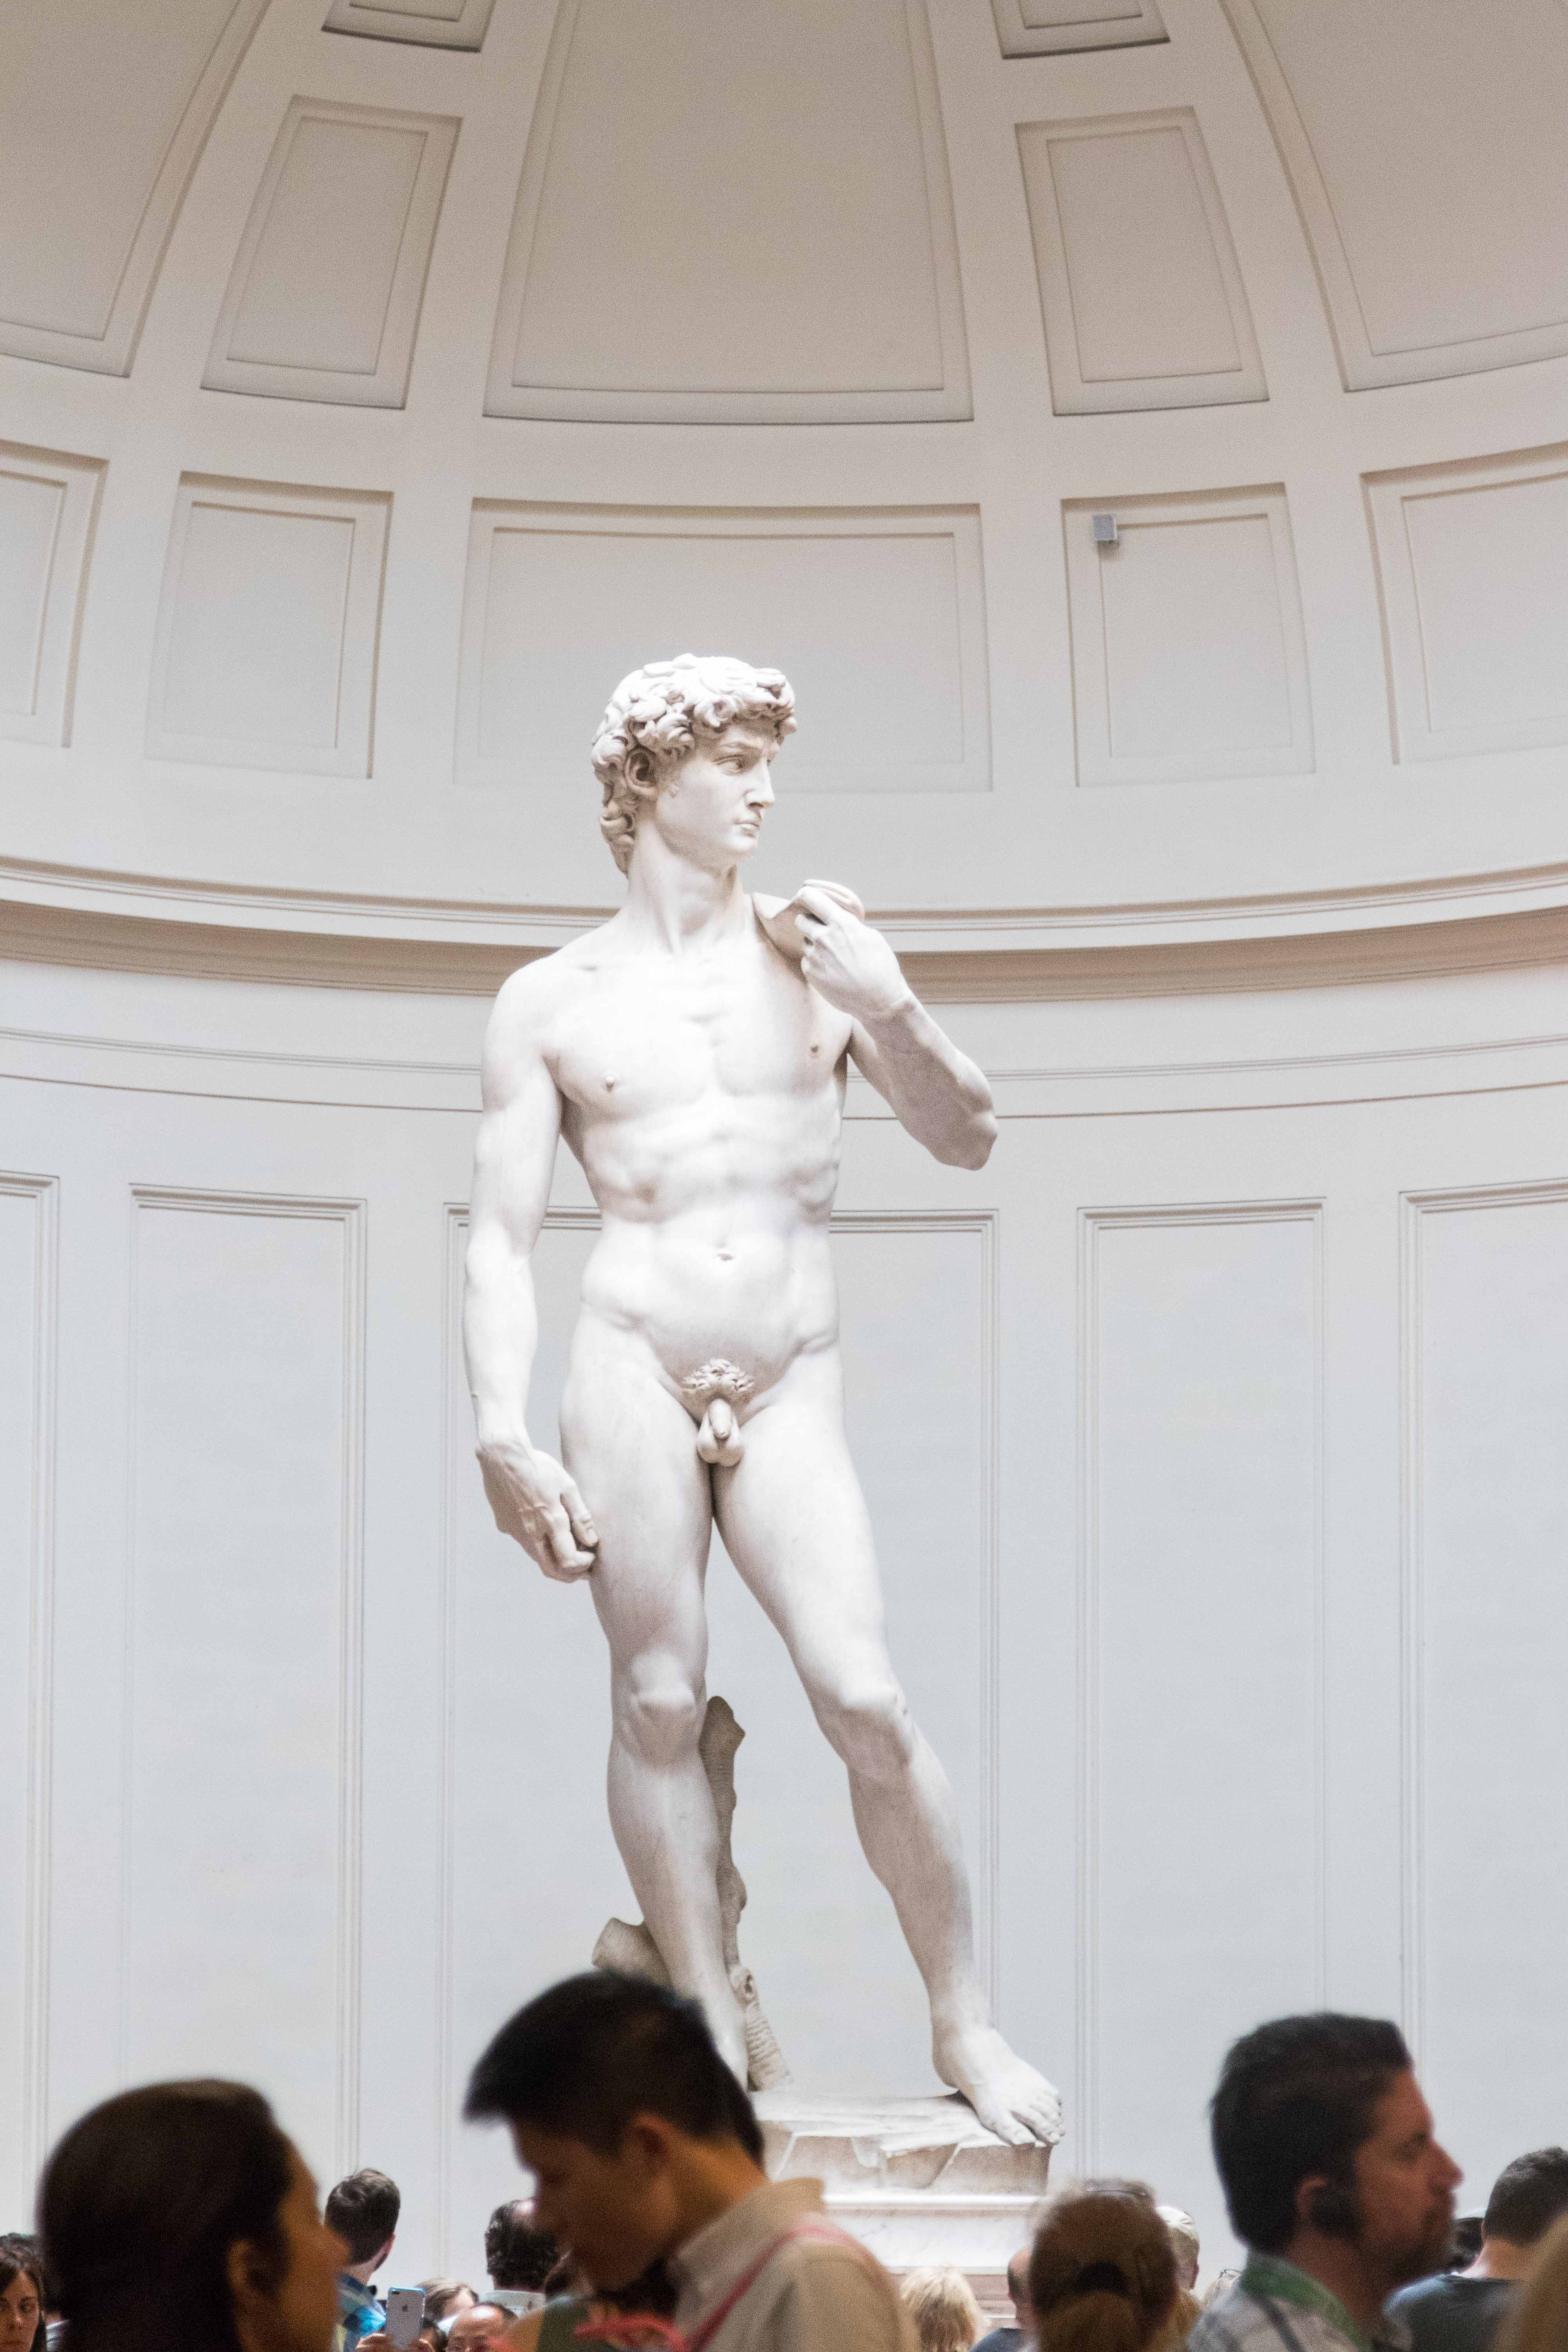 Mediterranean Cruise: Florence - Accademia Gallery | http://www.roseclearfield.com